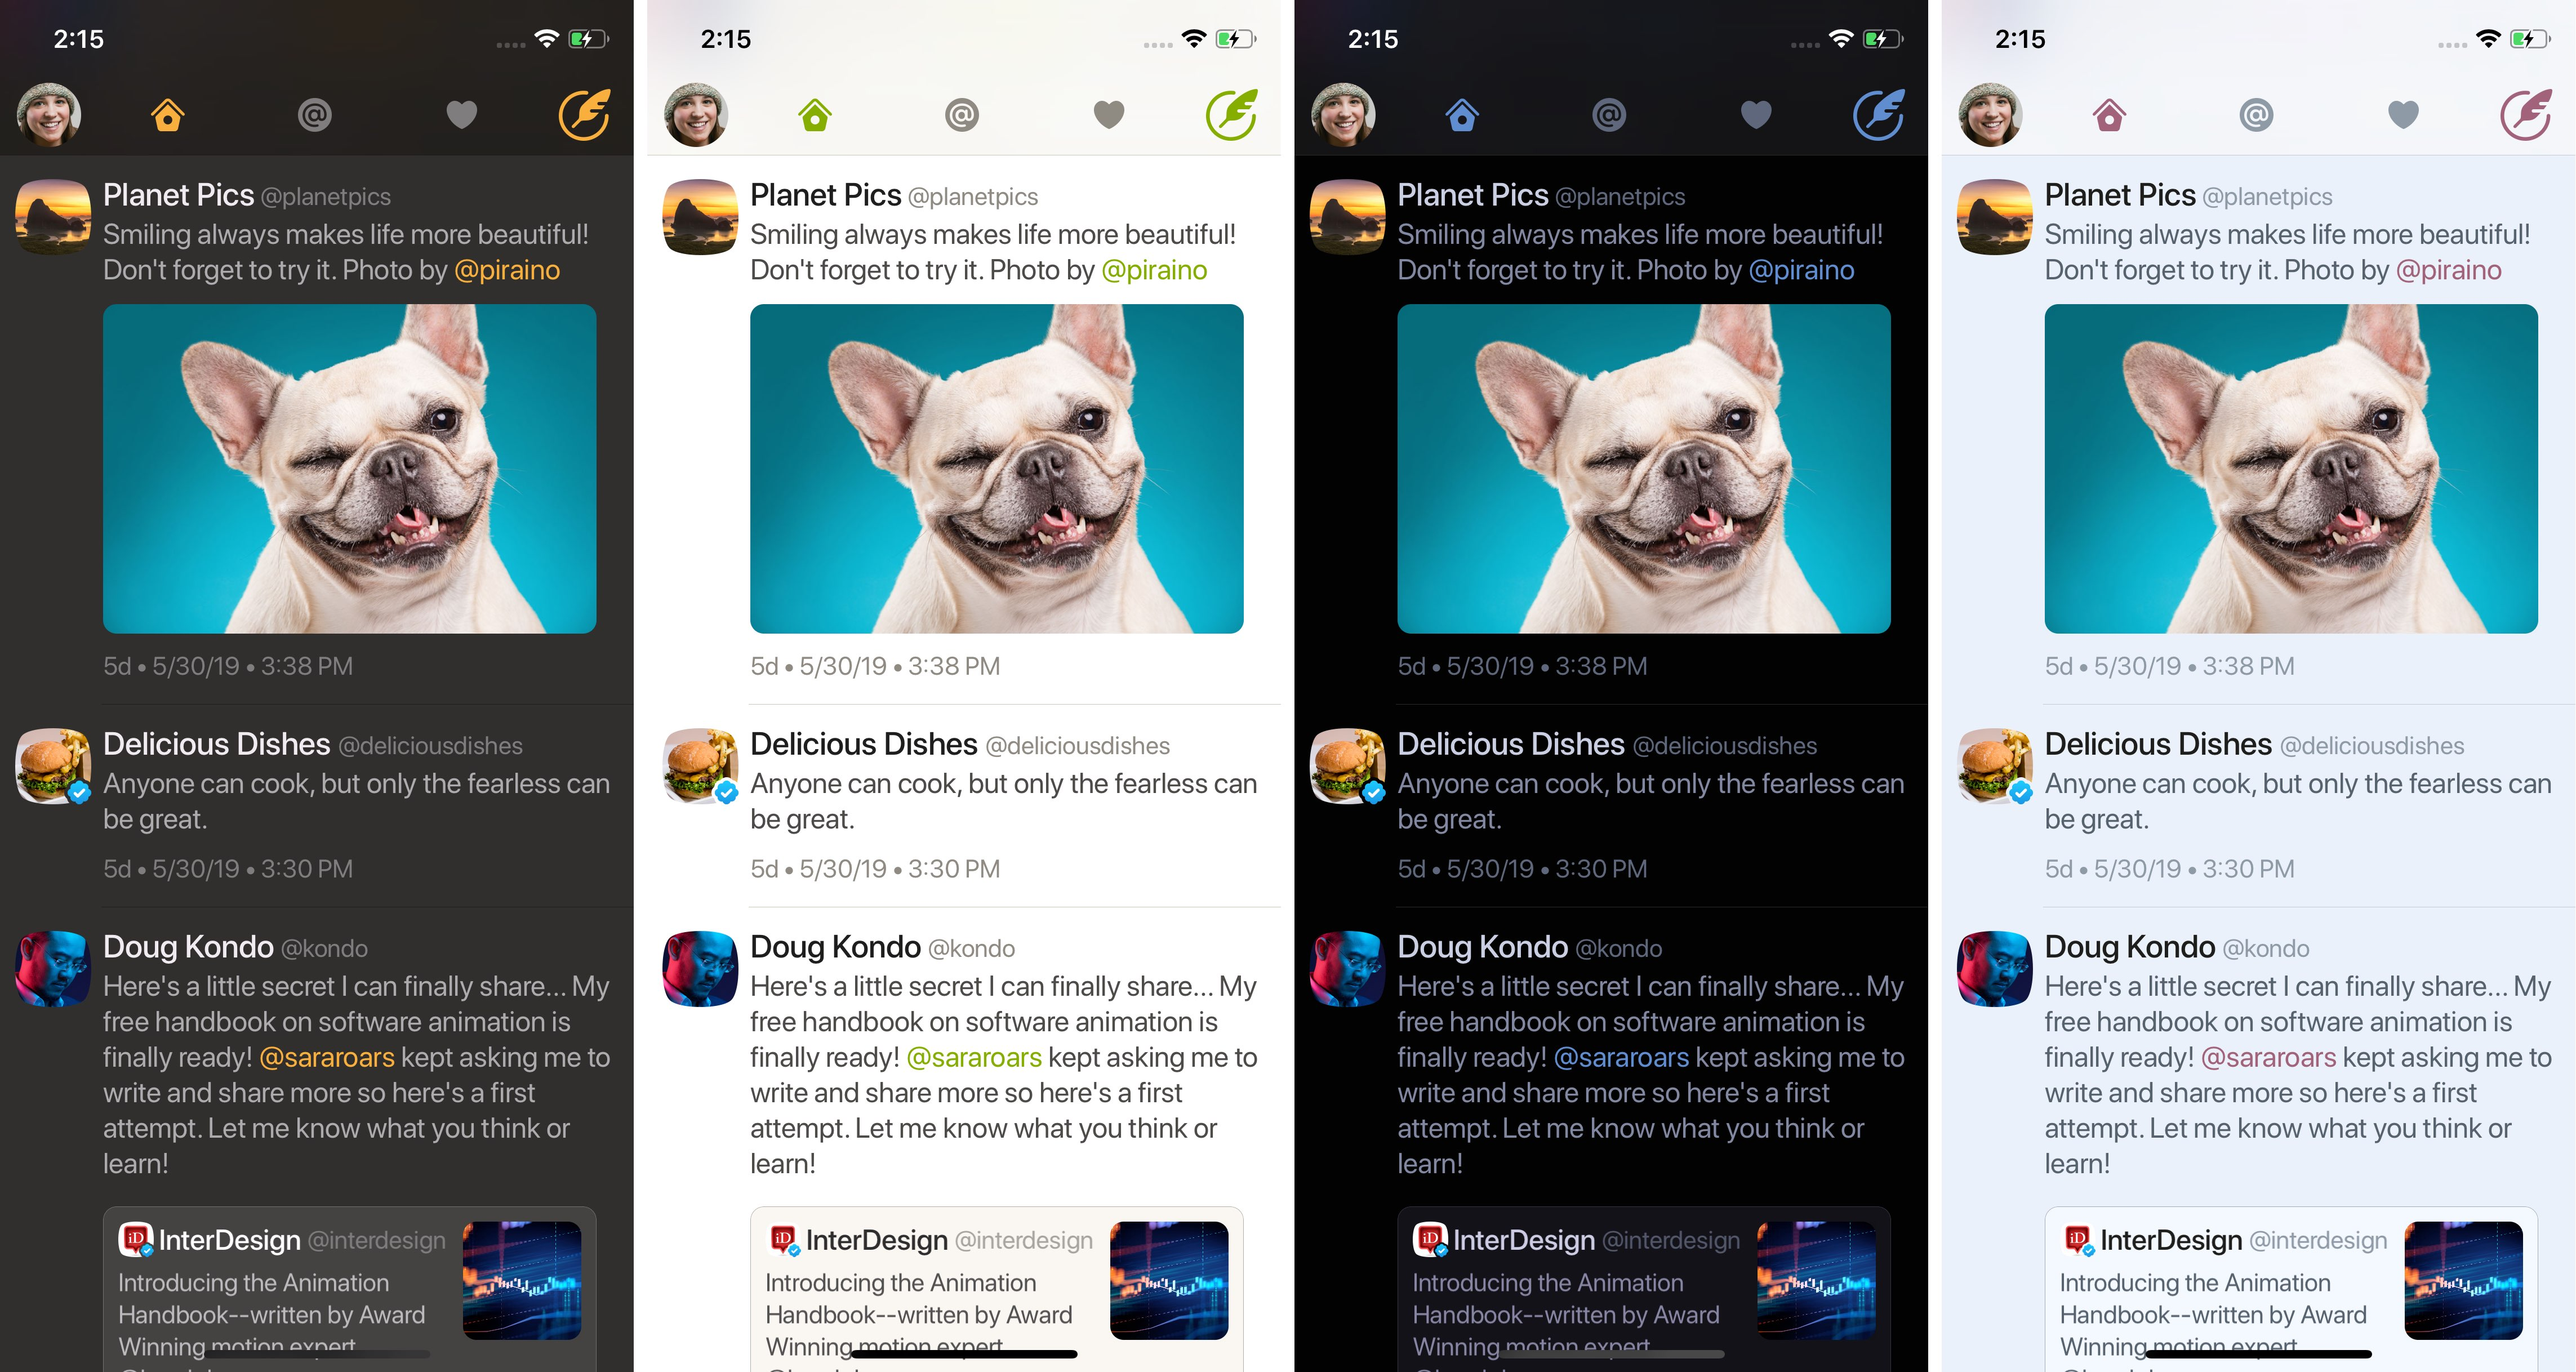 Twitterrific 6 brings full timeline images, Giphy integration, new customization goodies & more